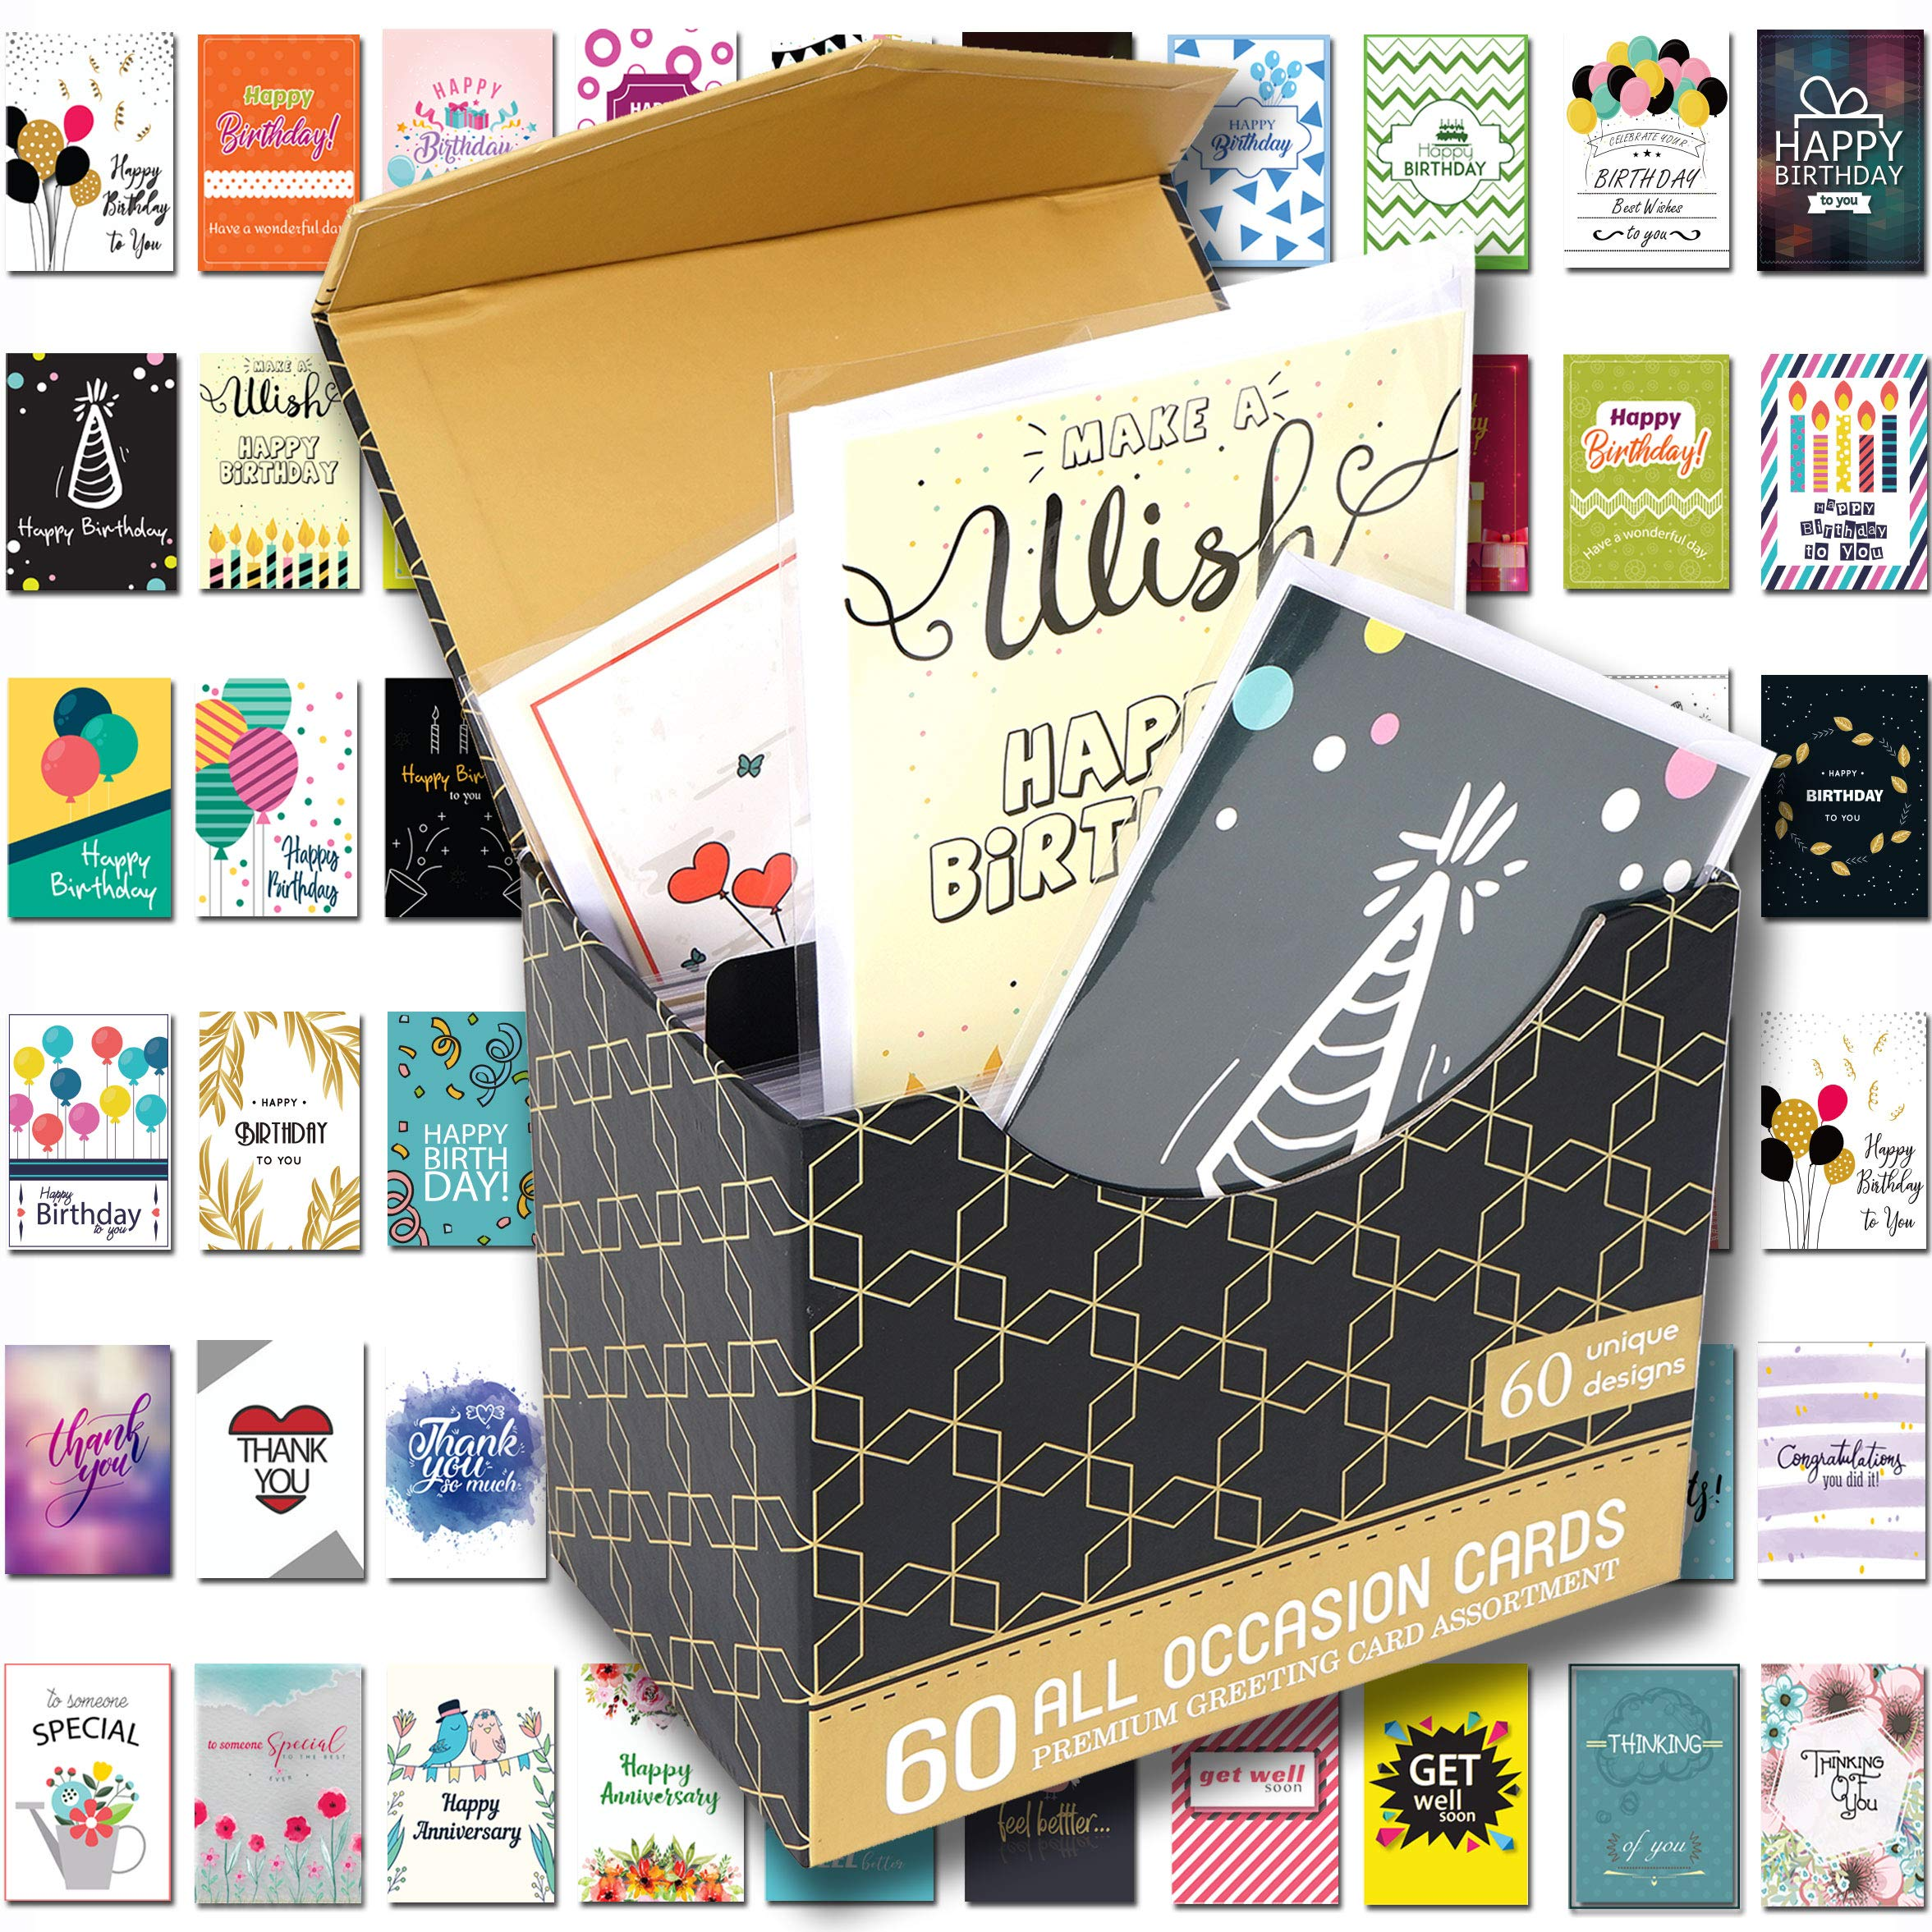 [UPGRADED] 60 Pack Birthday Cards Assortment with Assorted All Occasion Greeting Cards, 60 UNIQUE DESIGN BIG 5''x7'', Happy Birthday, Thank You Cards, Magnetic Bulk Box Set Variety Pack w/Thick Envelope